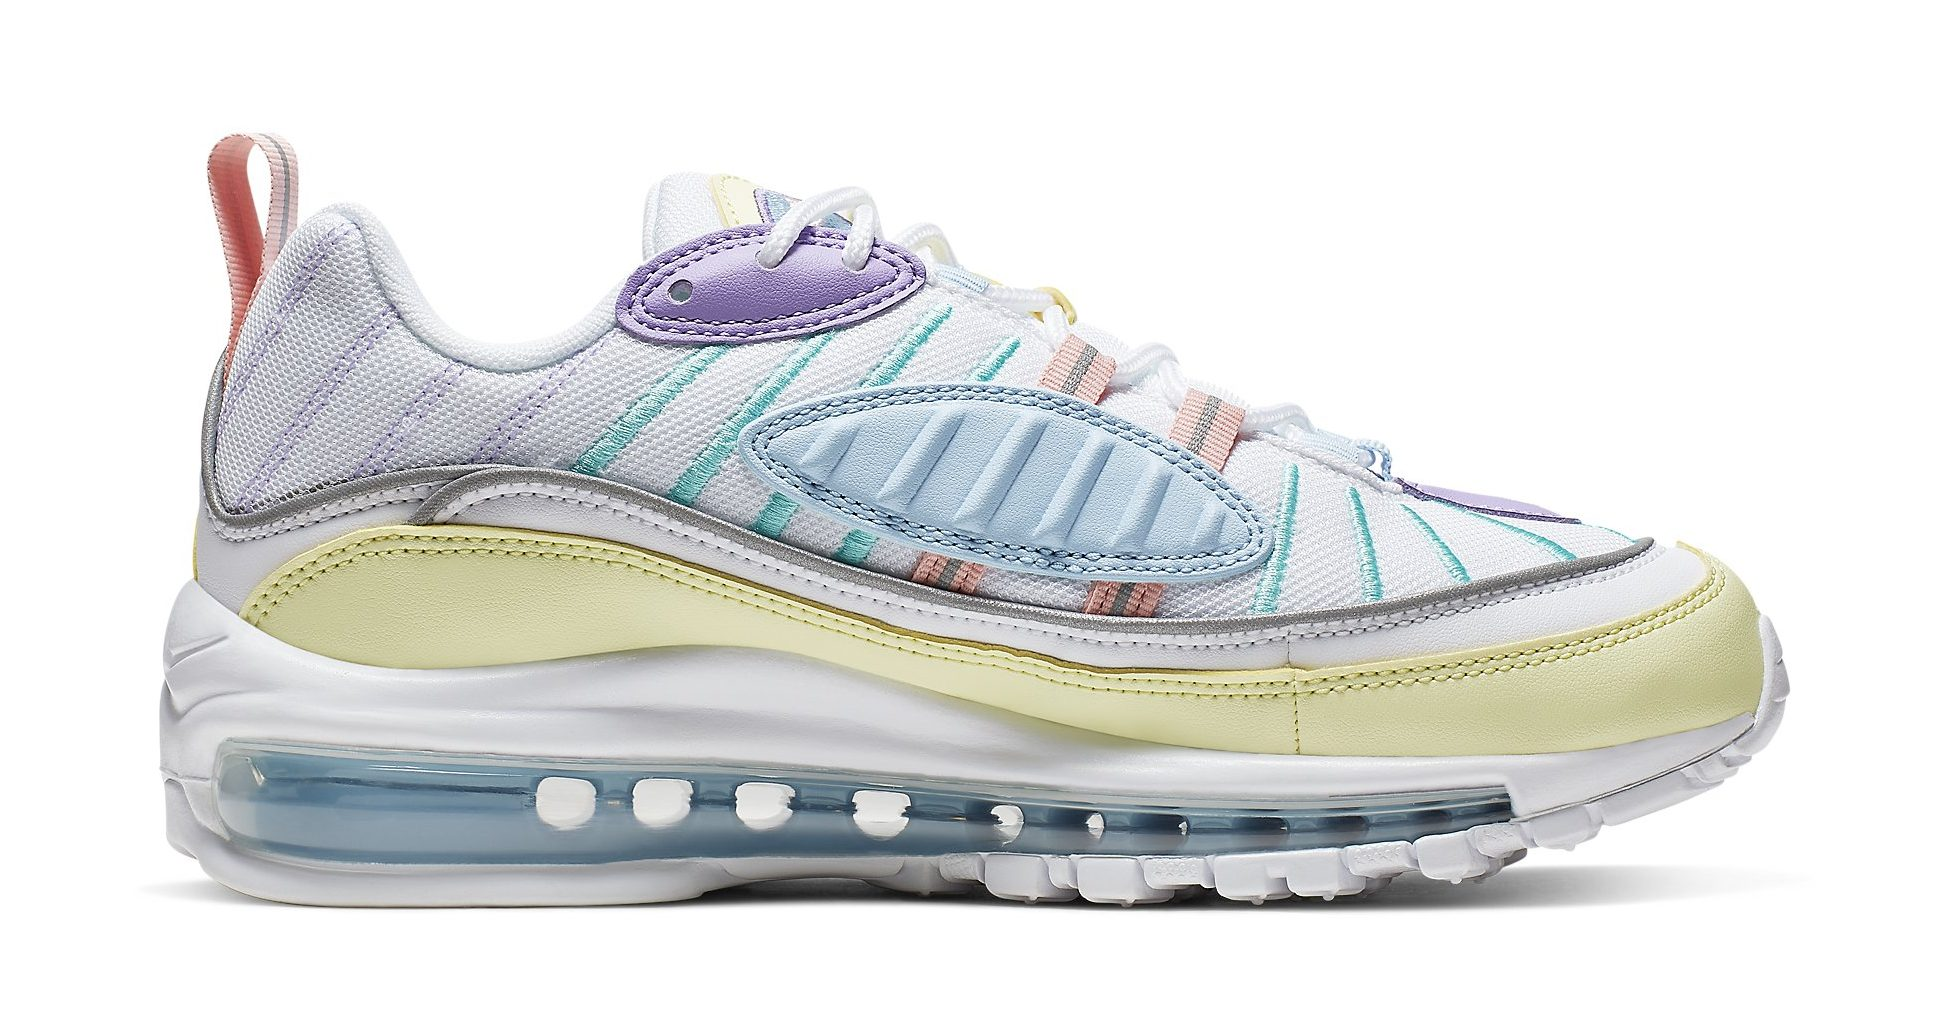 Nike Air Max 98 'Easter Pastel' Resale Info: How to Buy a Pair ...